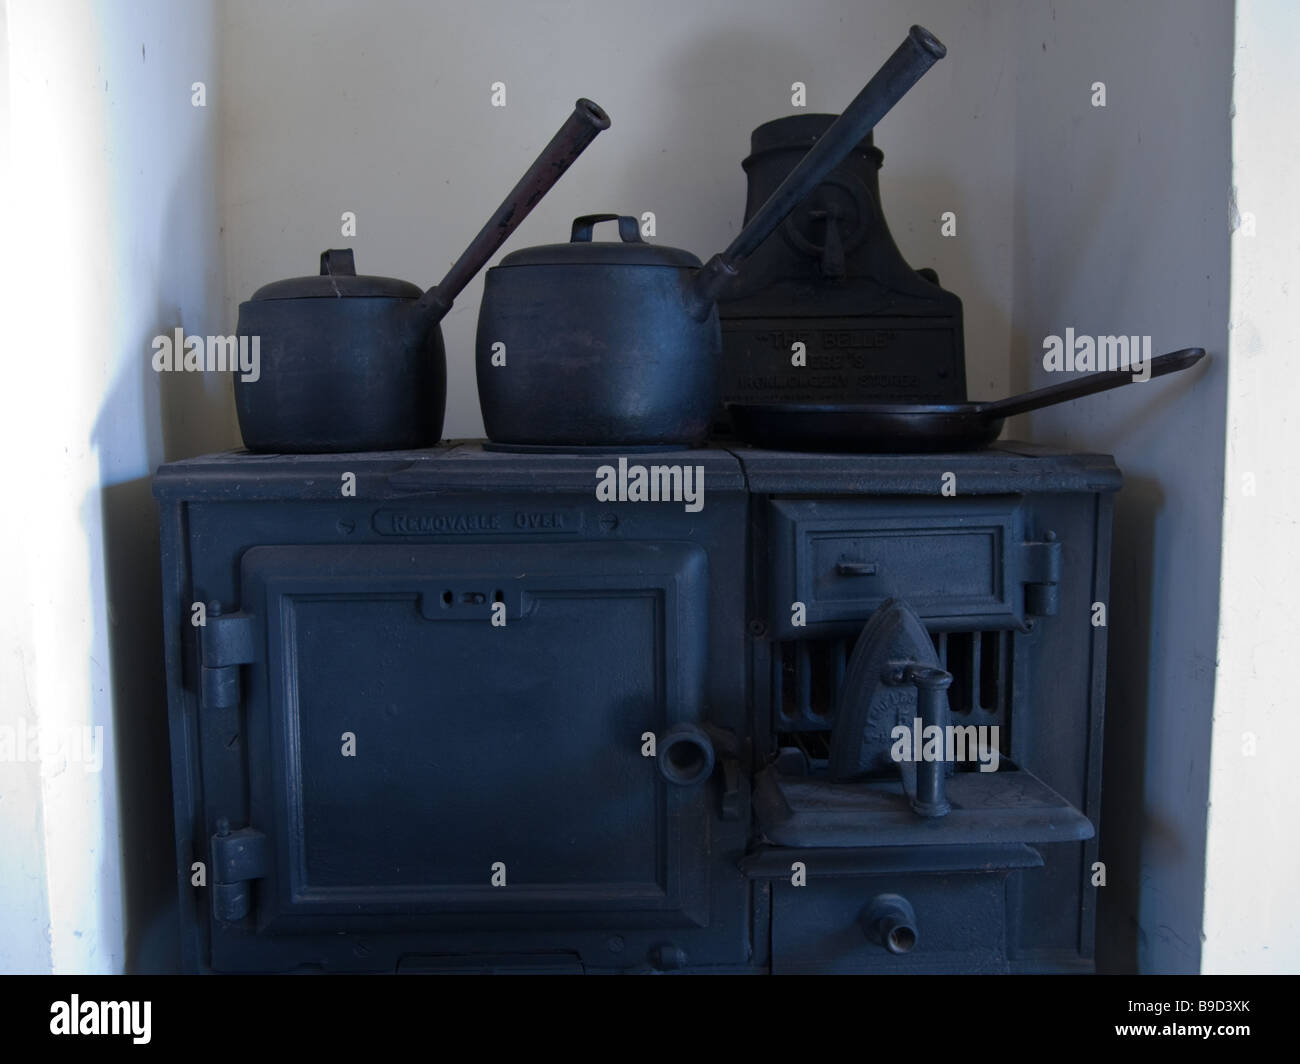 The old 2 part cooking range (oven and hob) - Stock Image